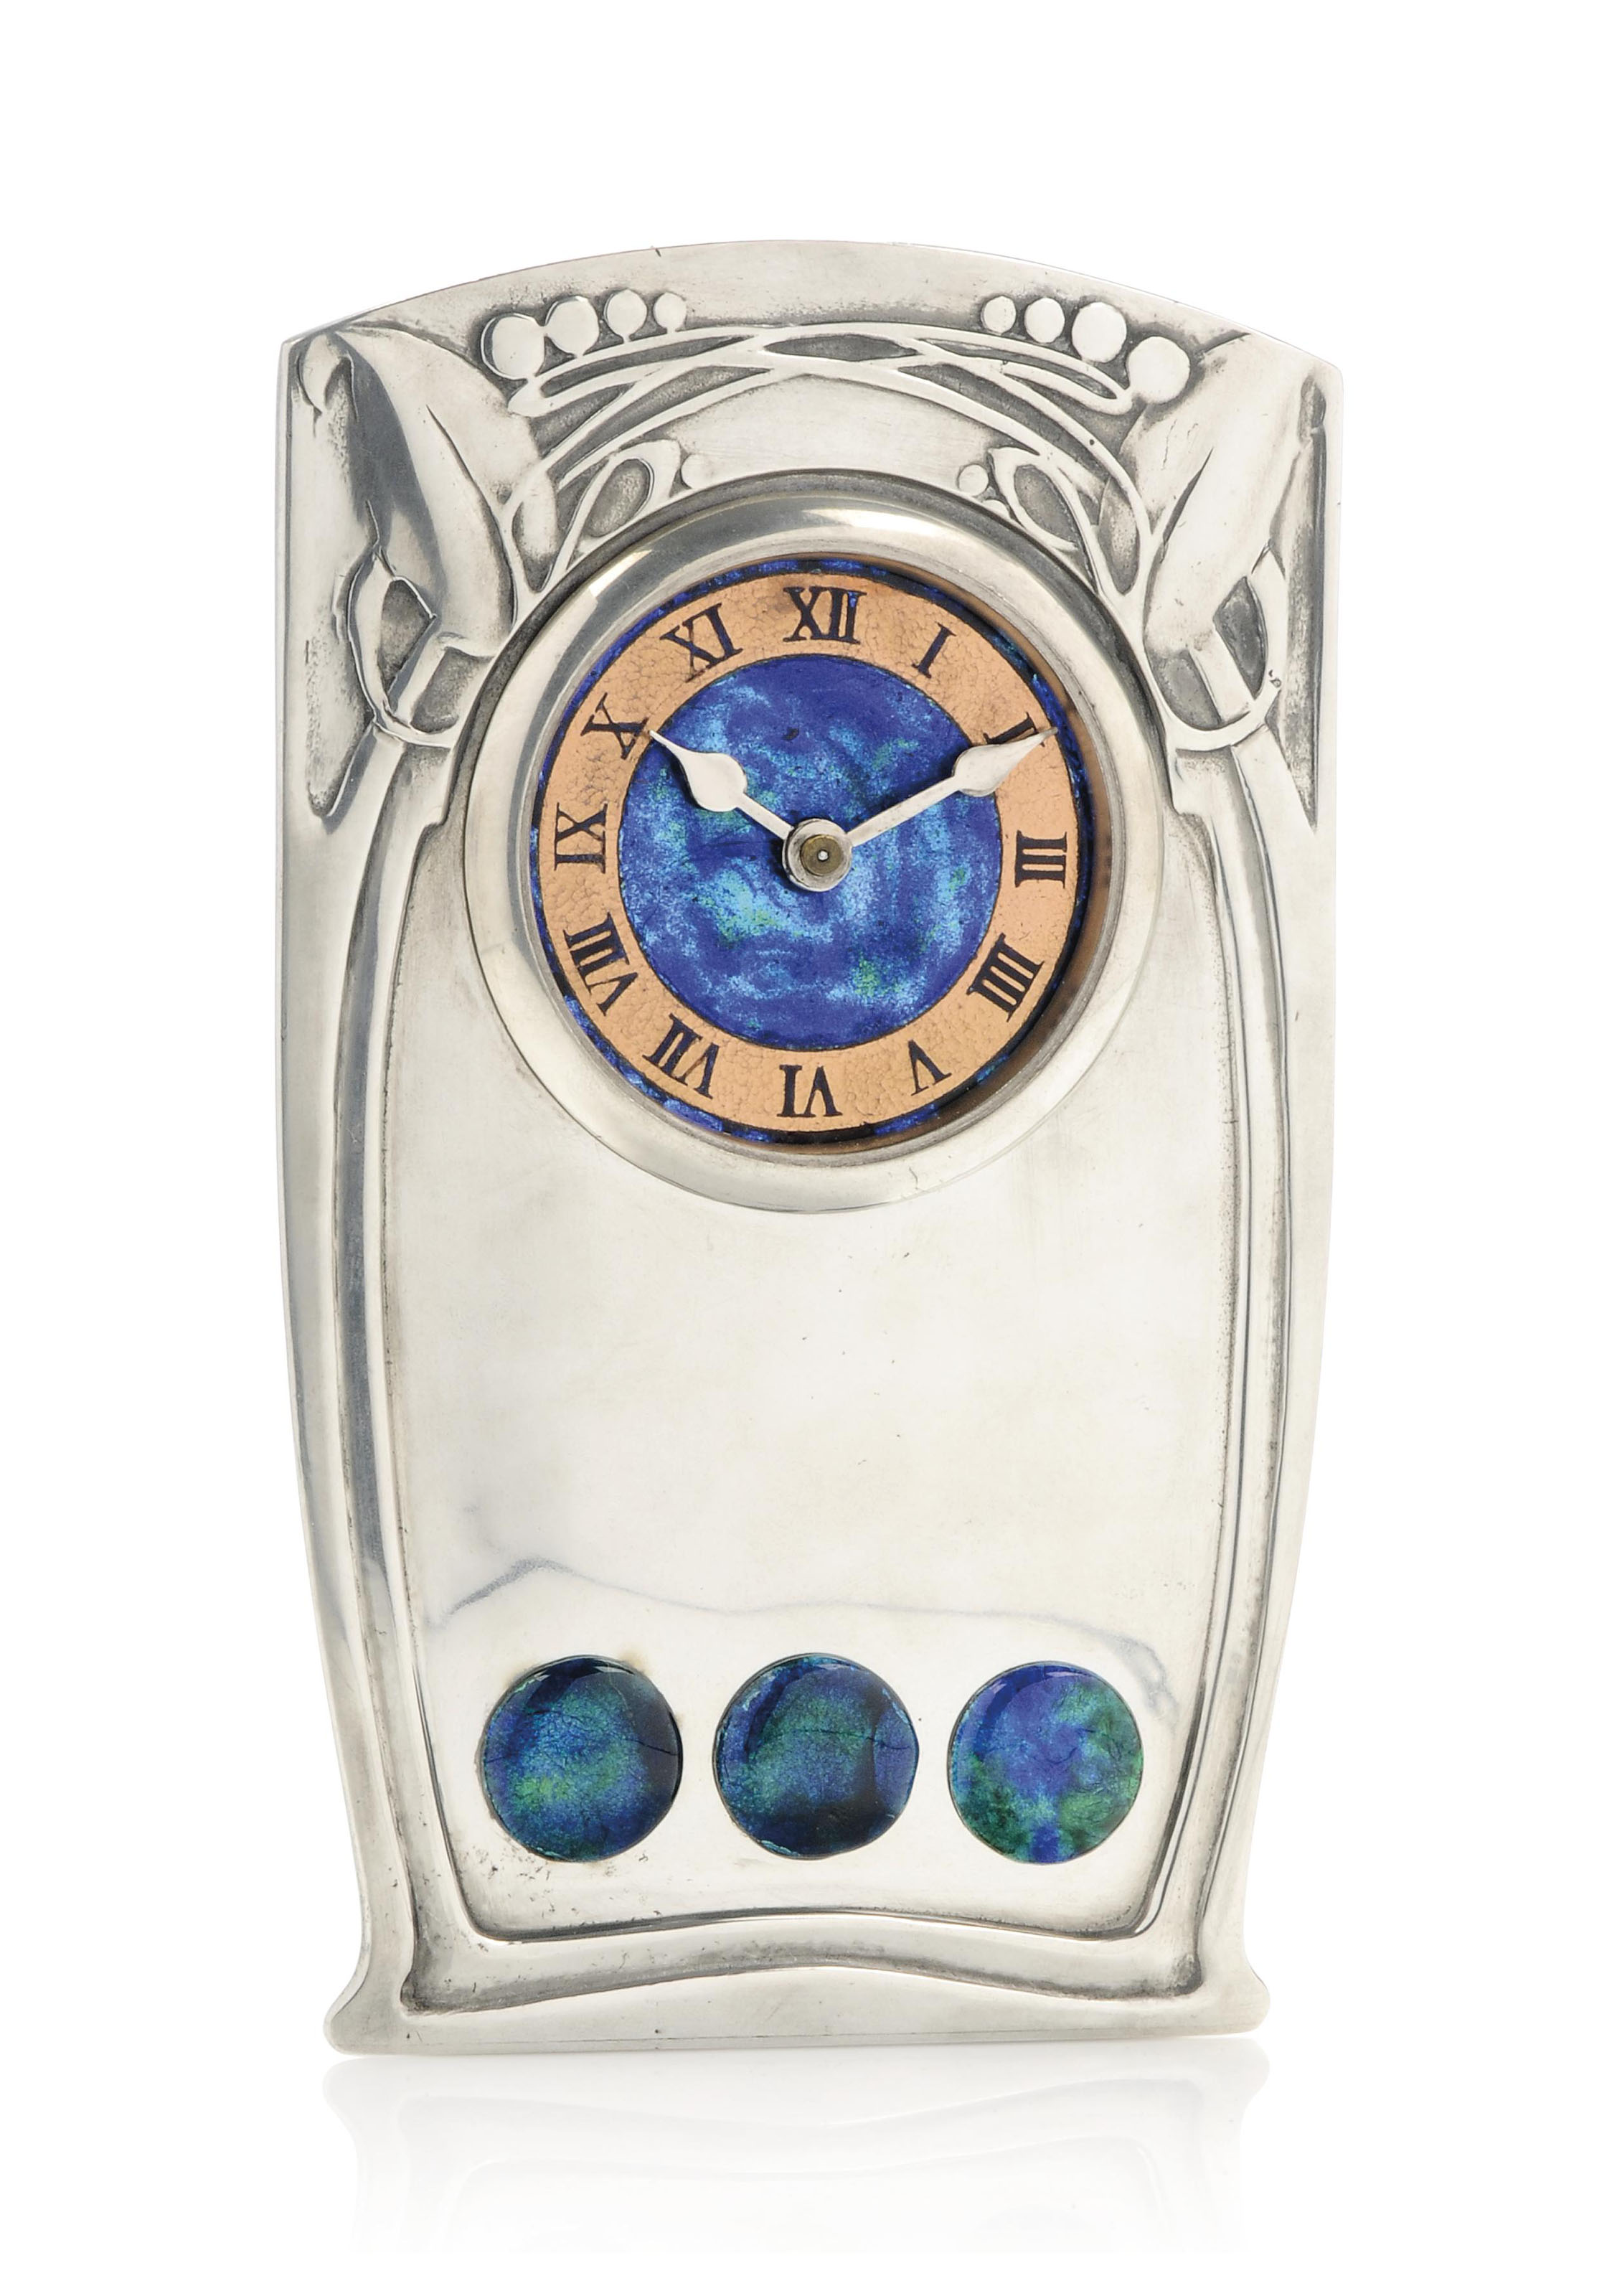 A LIBERTY & CO TUDRIC PEWTER AND ENAMEL CLOCK AFTER A DESIGN BY ARCHIBALD KNOX